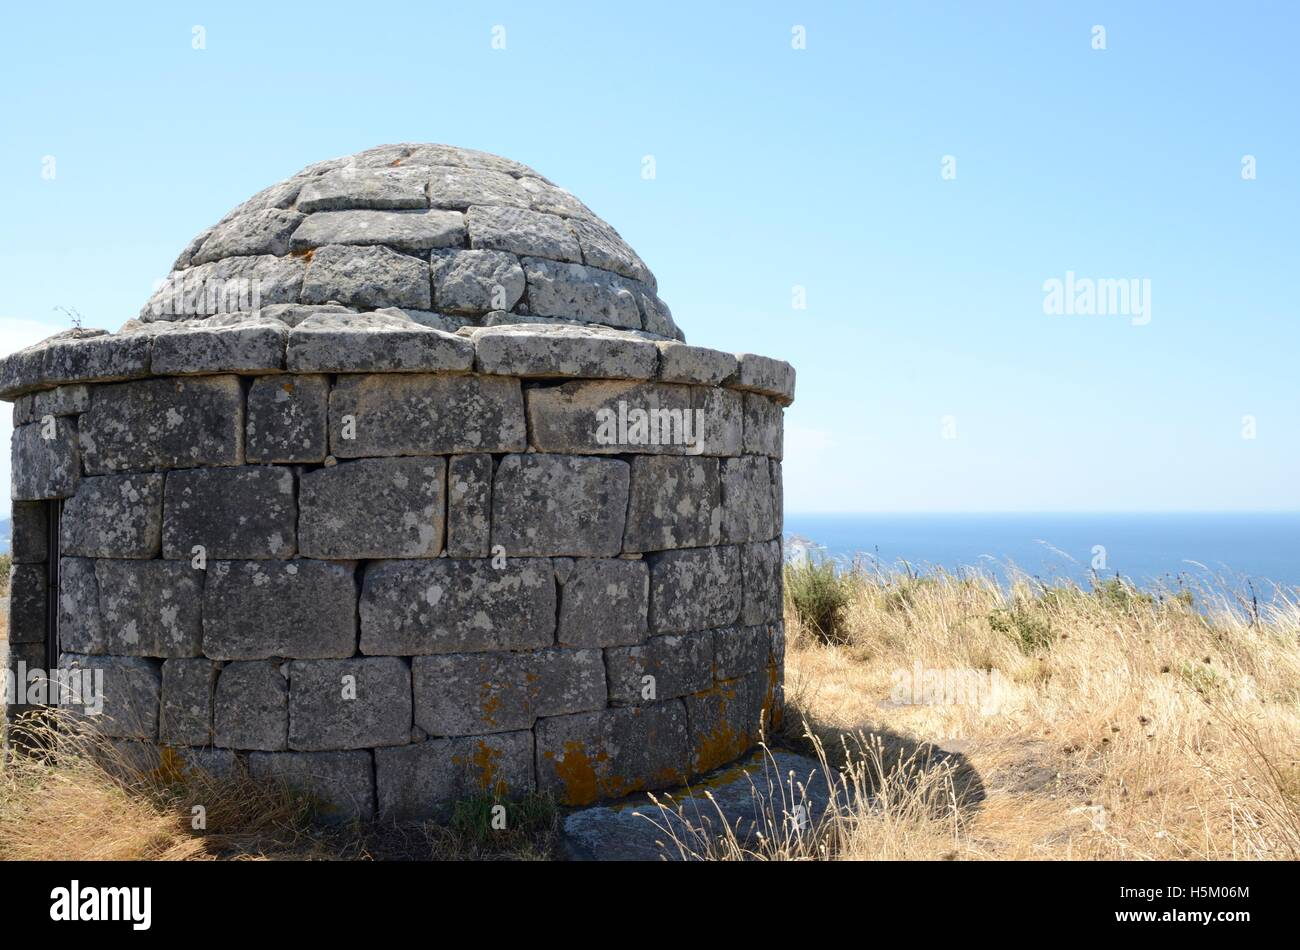 Reconstructed of prehistorical house at the Mountain of Facho in Cangas, in the province of Pontevedra, Galicia, - Stock Image